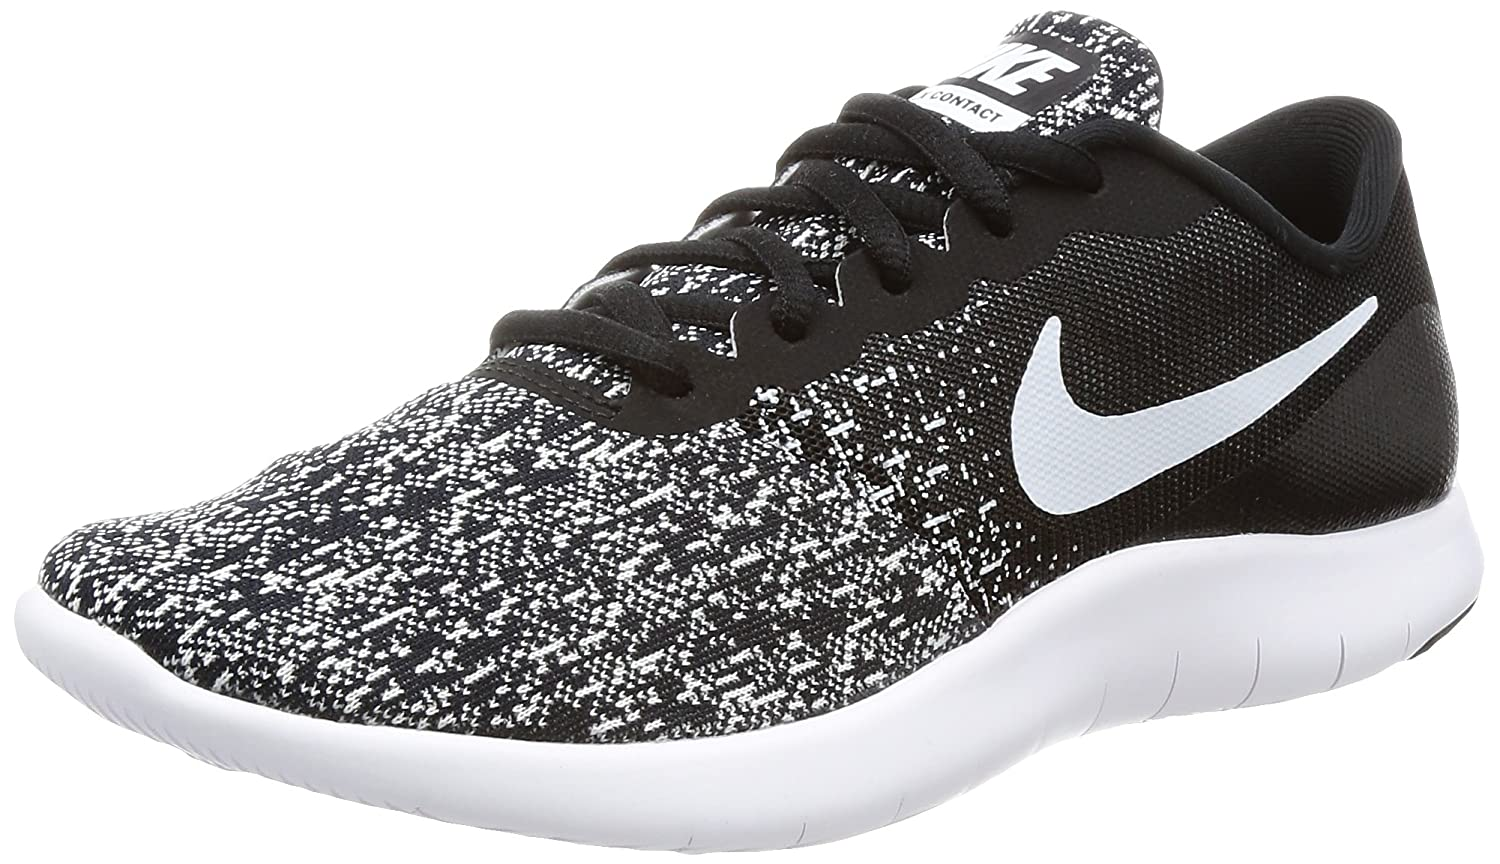 cheap for discount 6772b 717d0 Amazon.com   Nike New Womens Flex Contact Running Shoe Black White 7   Road  Running